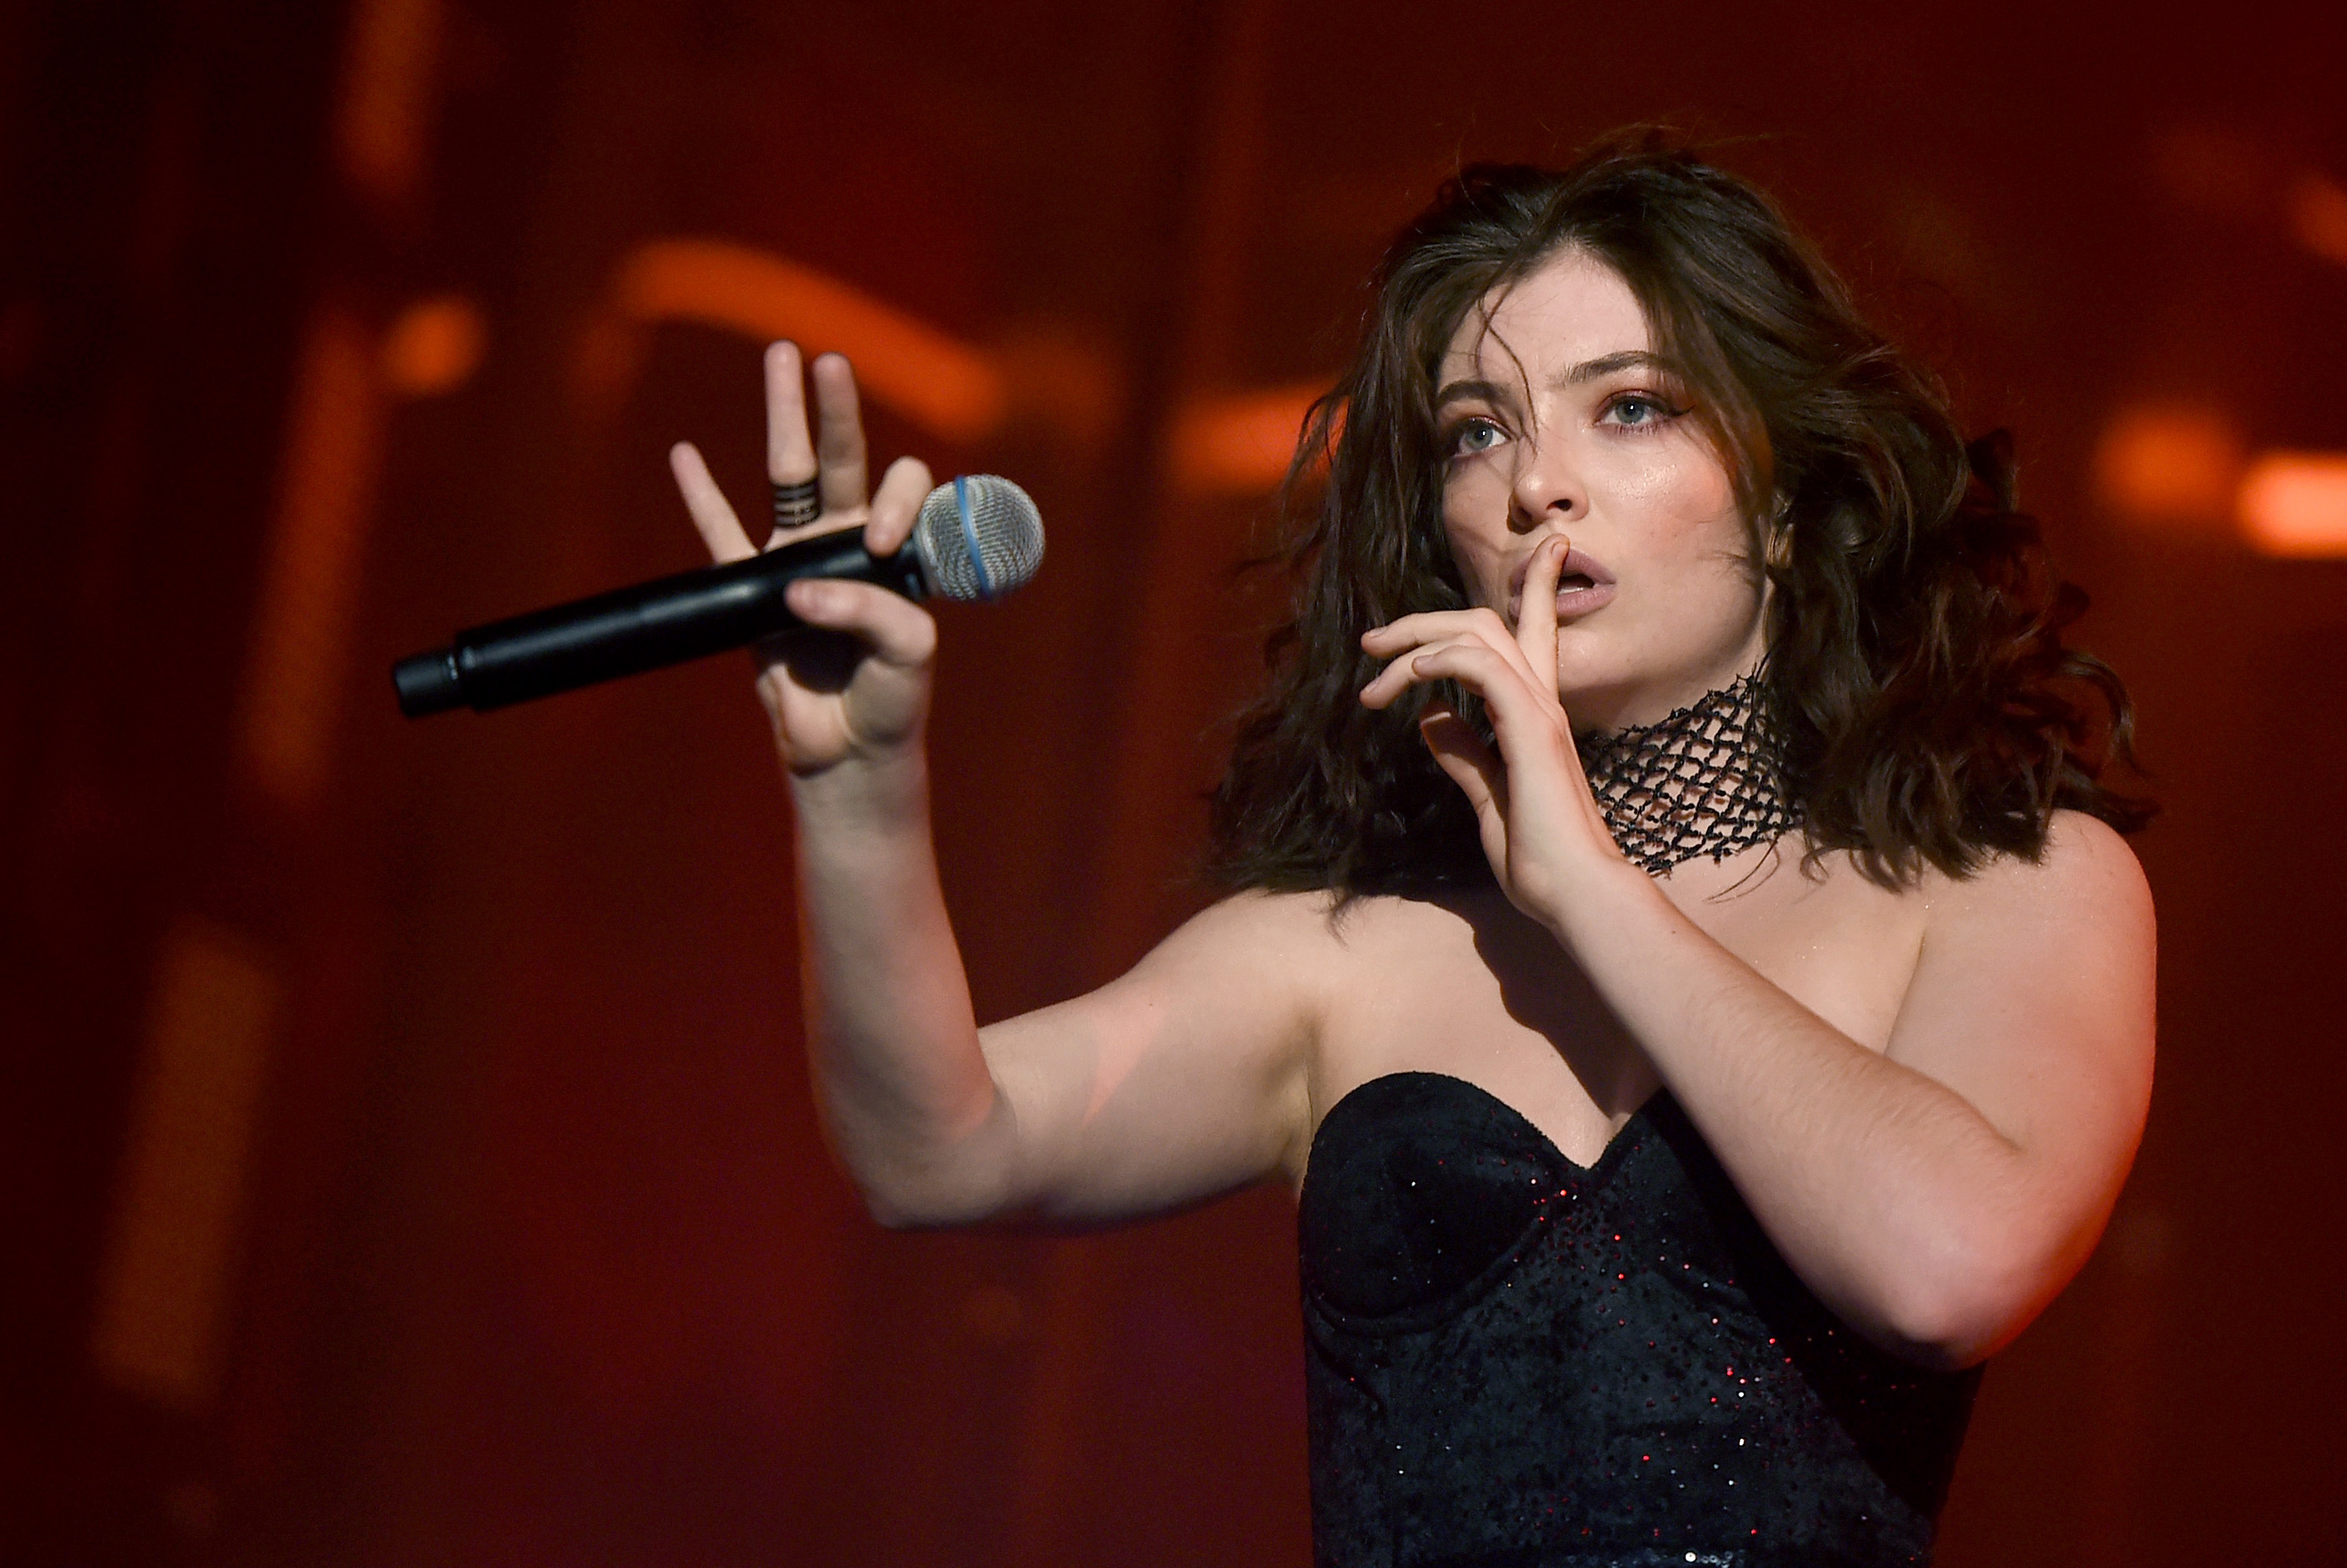 INDIO, CA - APRIL 23:  Singer Lorde performs on the Coachella Stage during day 3 (Weekend 2) of the Coachella Valley Music And Arts Festival on April 23, 2017 in Indio, California.  (Photo by Kevin Winter/Getty Images for Coachella)